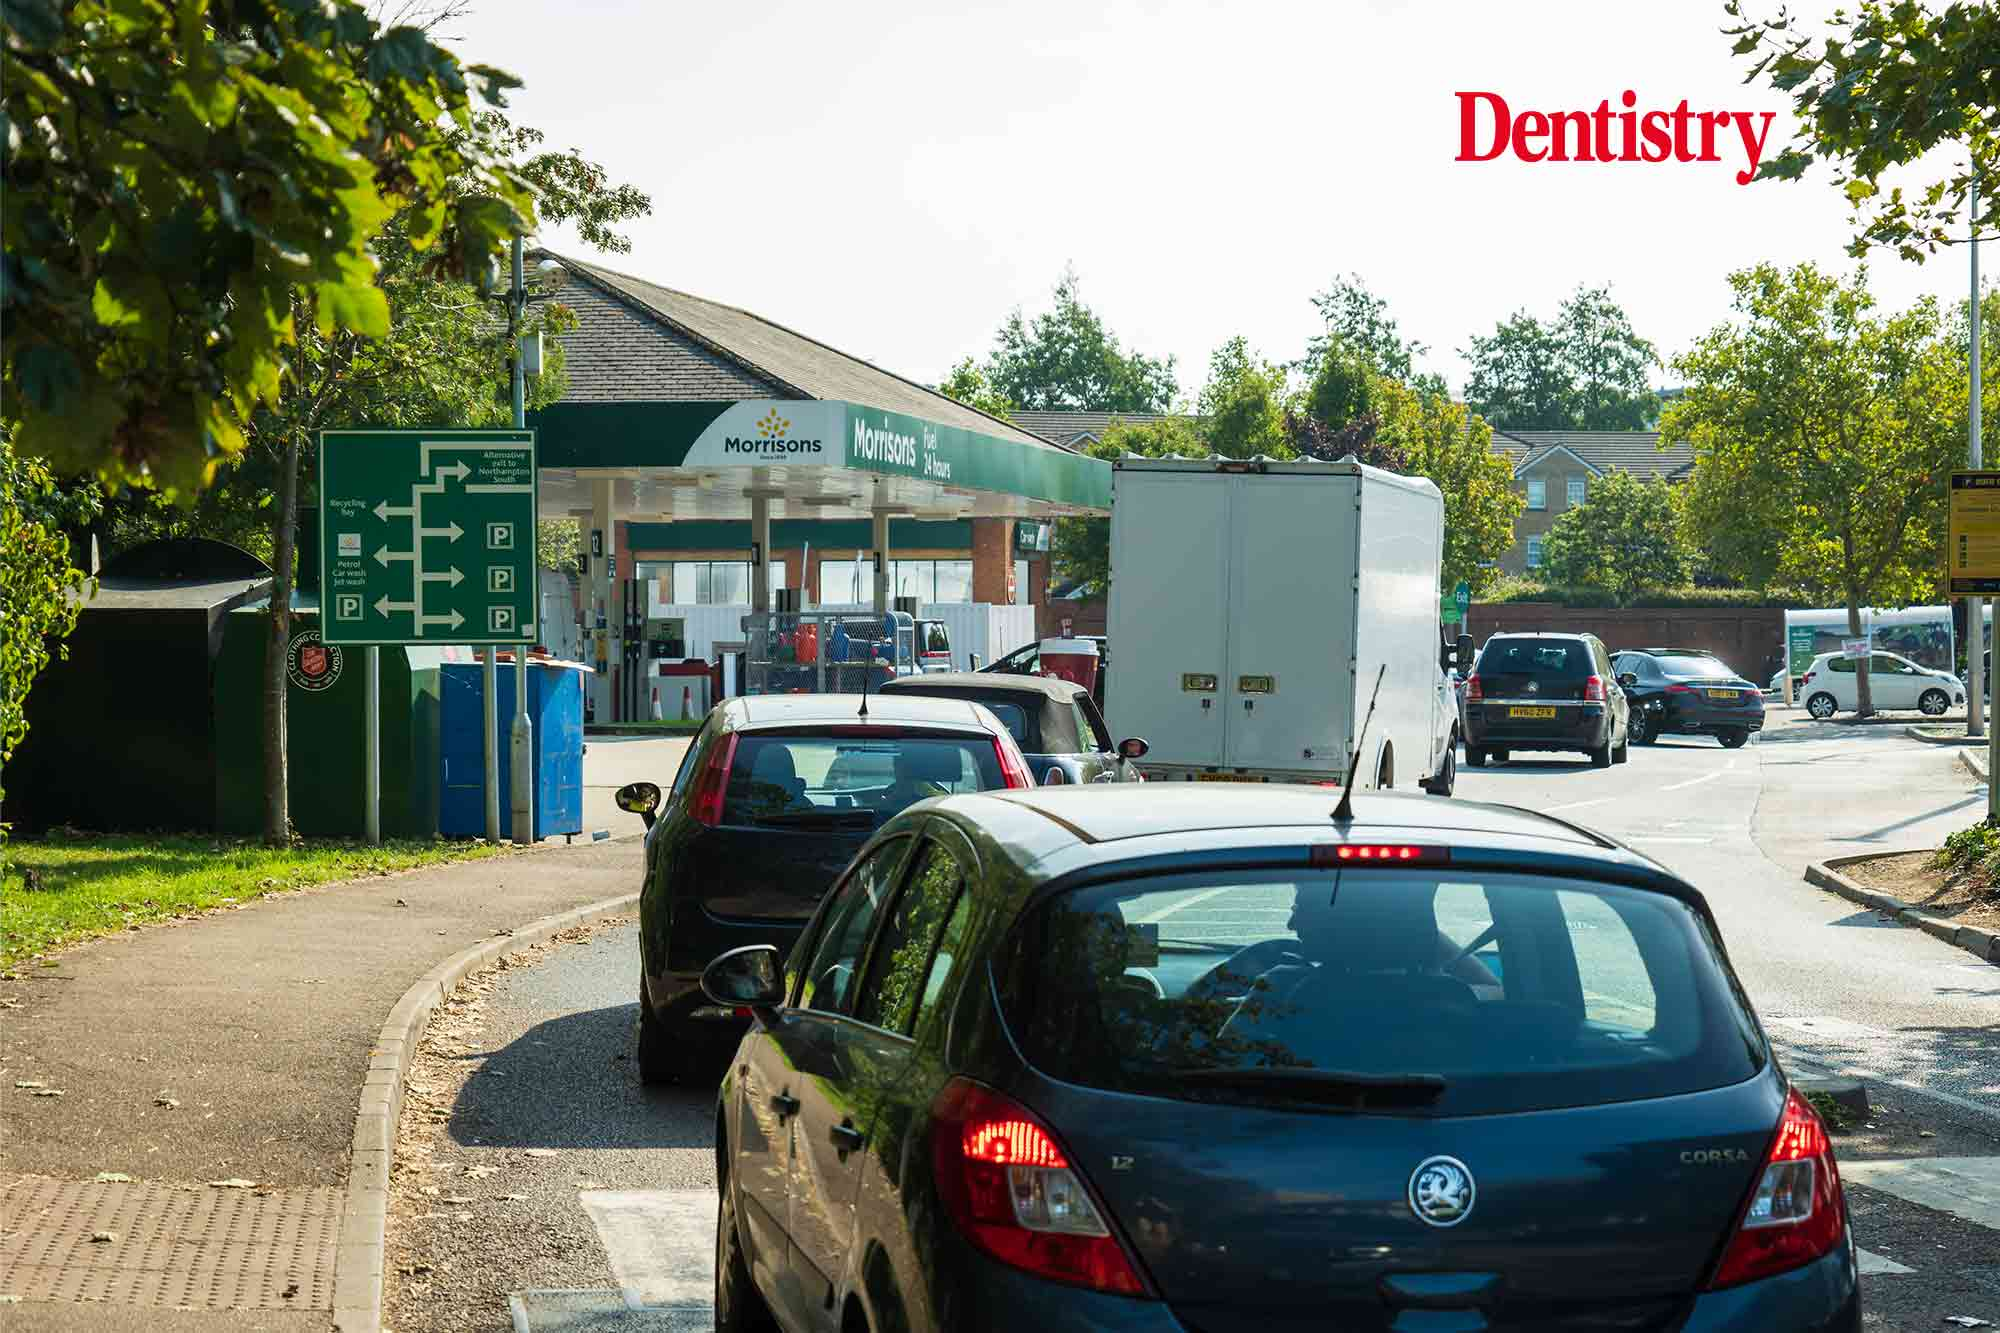 Petrol crisis – NHS health workers should get priority access to fuel, says association